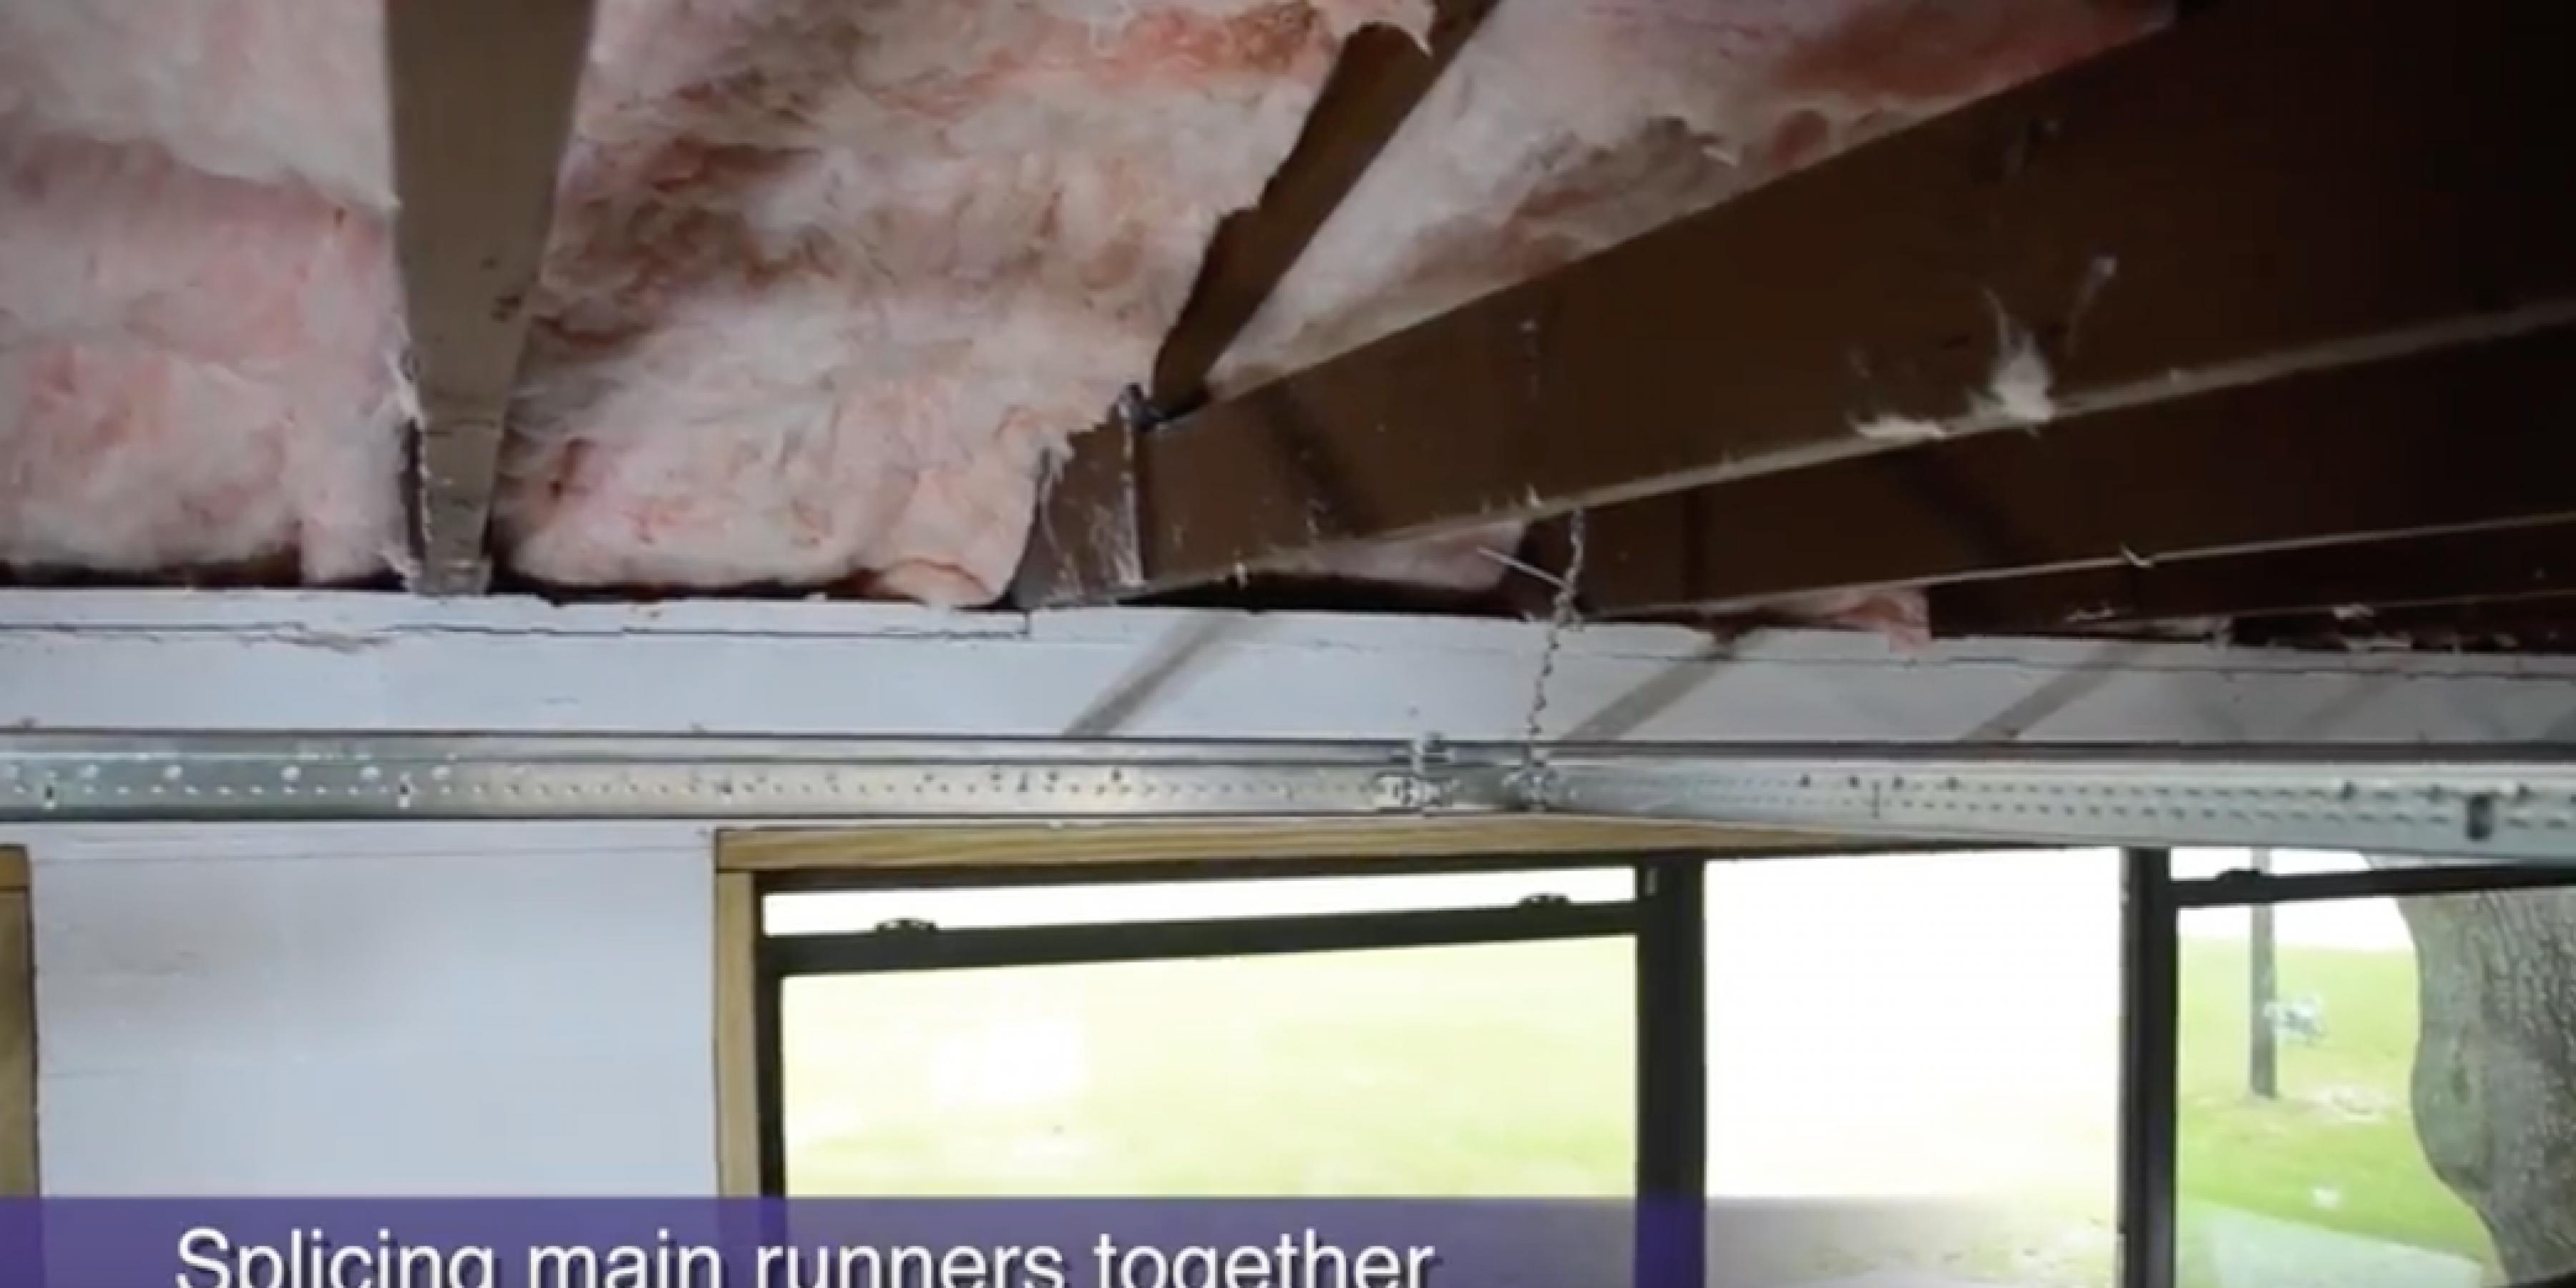 How to stab, remove and reinstall acoustical main runners